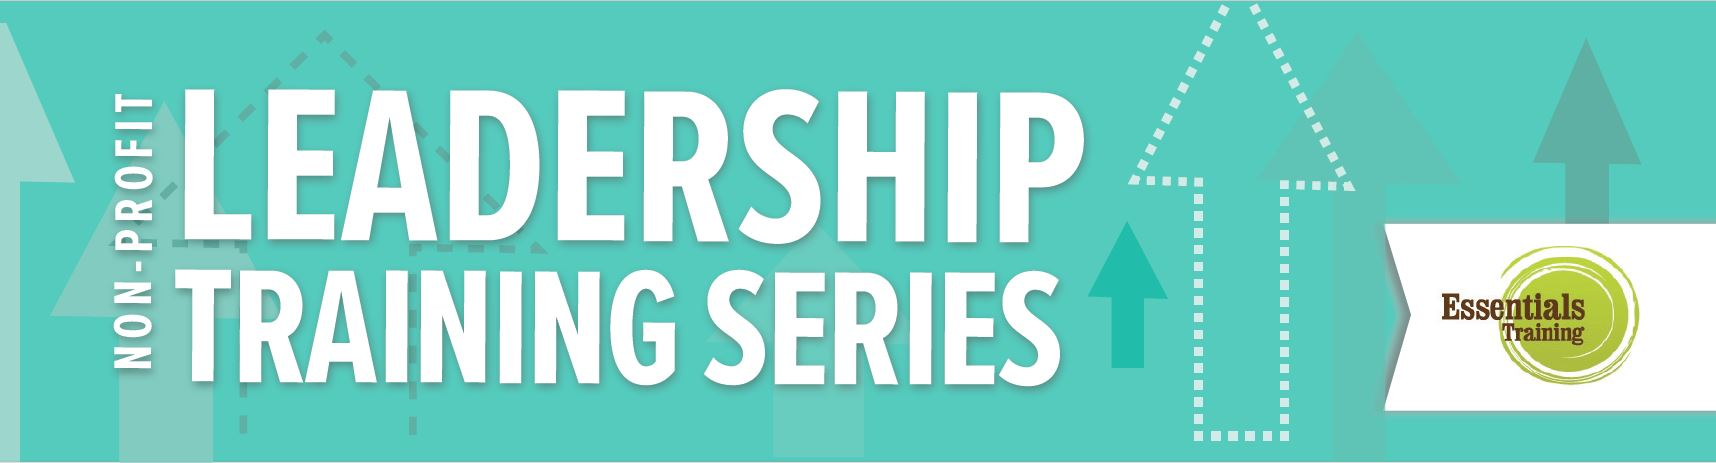 Non-Profit Leadership Training Series